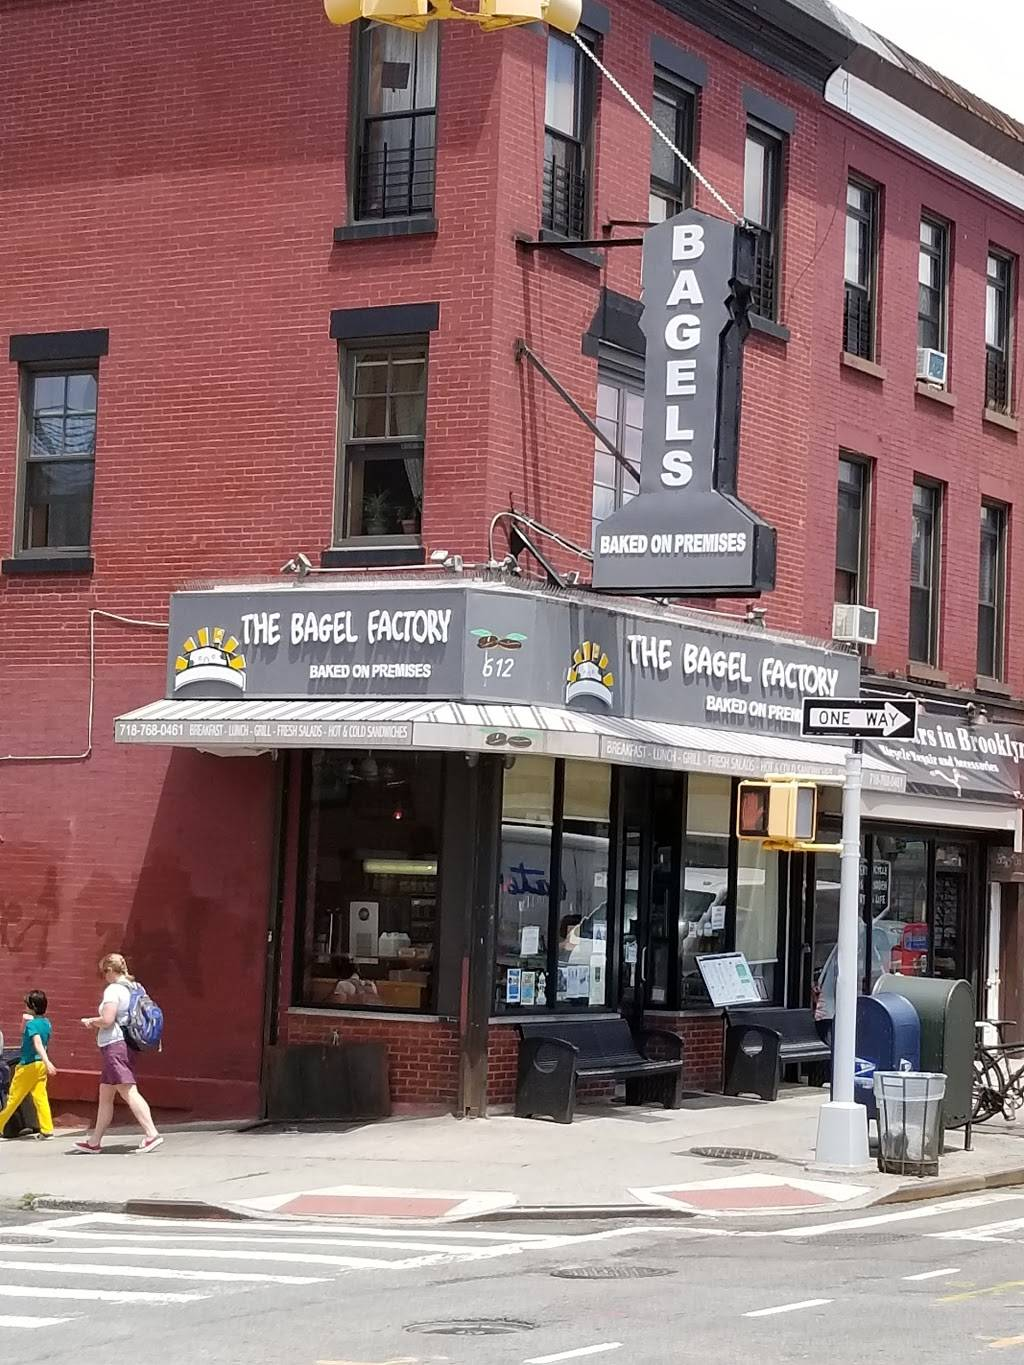 The Bagel Factory | cafe | 612 5th Ave, Brooklyn, NY 11215, USA | 7187680461 OR +1 718-768-0461